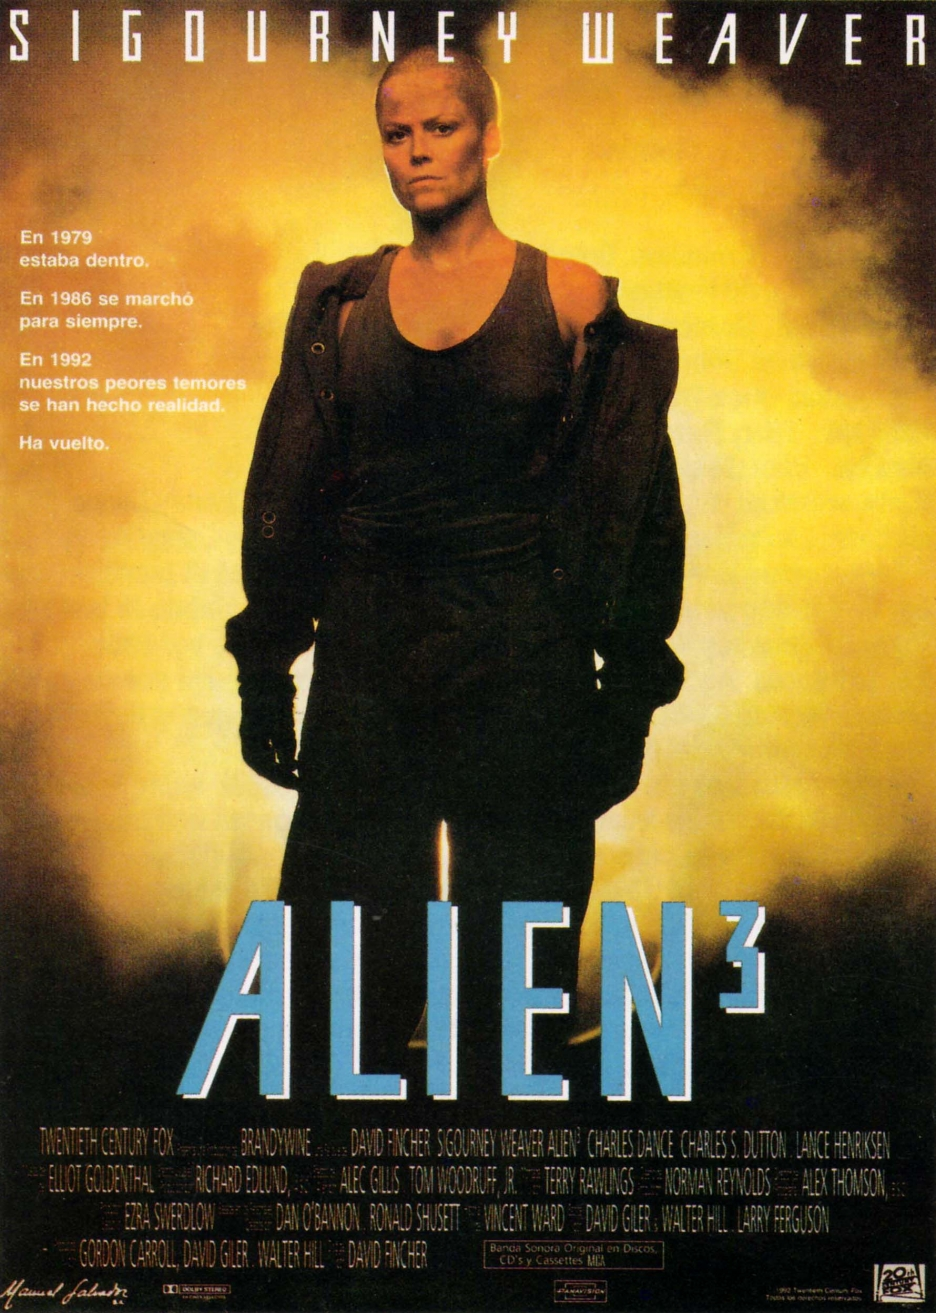 alien 3 full movie films